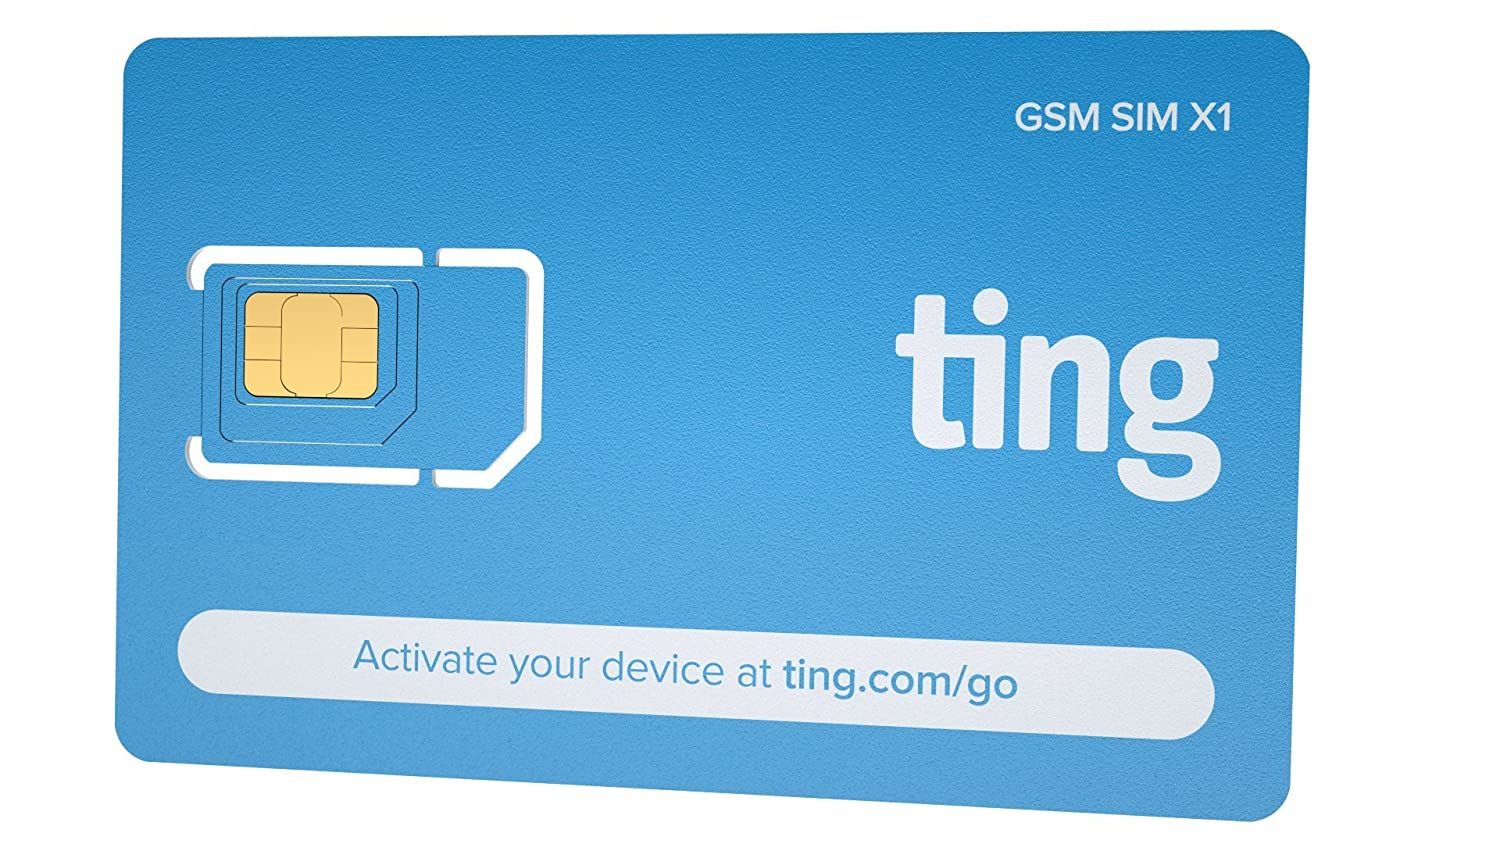 Ting GSM SIM card - No contract, Universal SIM, Nationwide coverage, Only pay for what you use